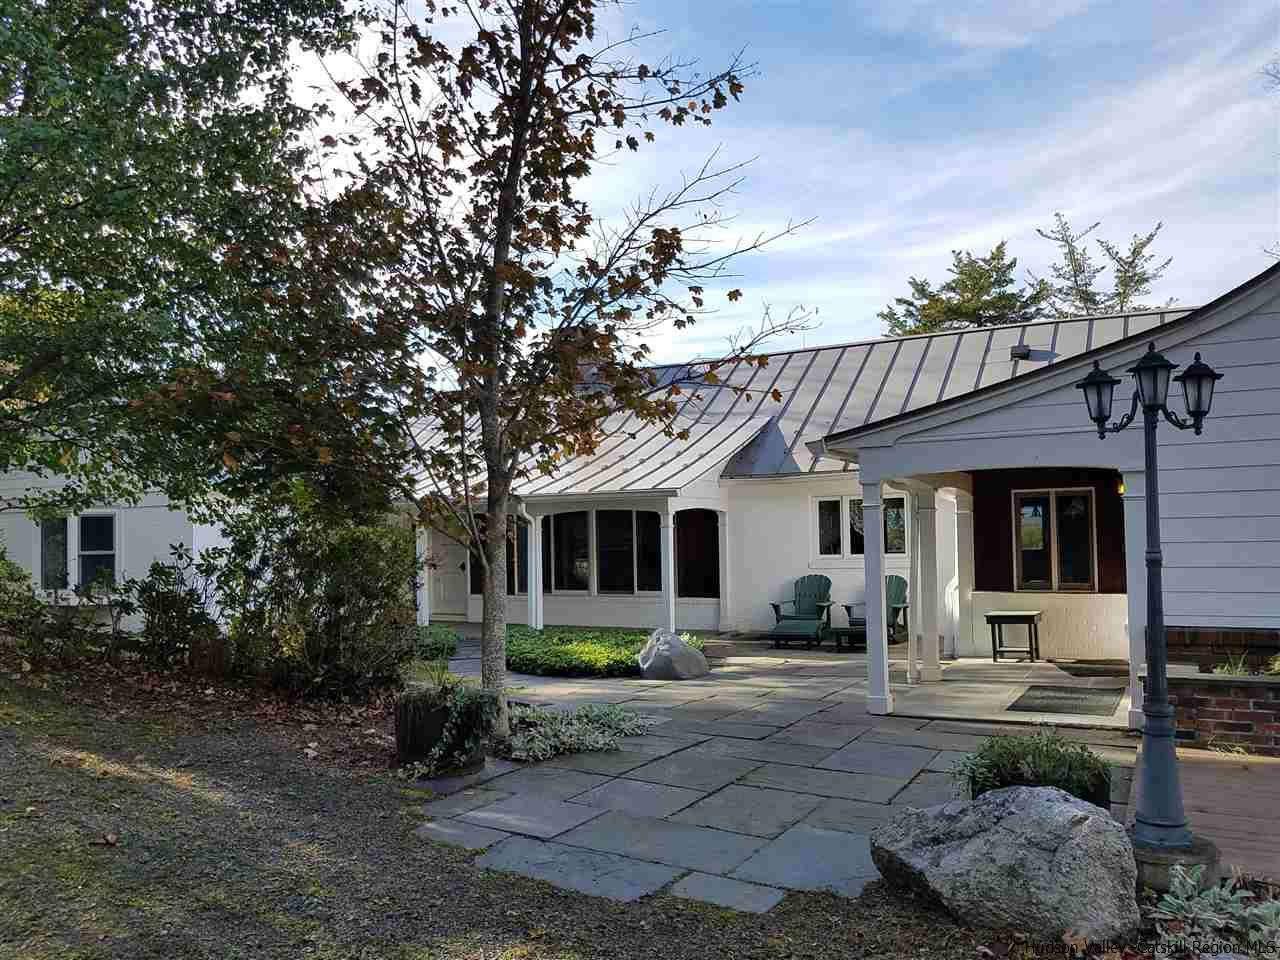 Single Family Home for Sale at 64 Rock Hill Road 64 Rock Hill Road High Falls, New York 12440 United States